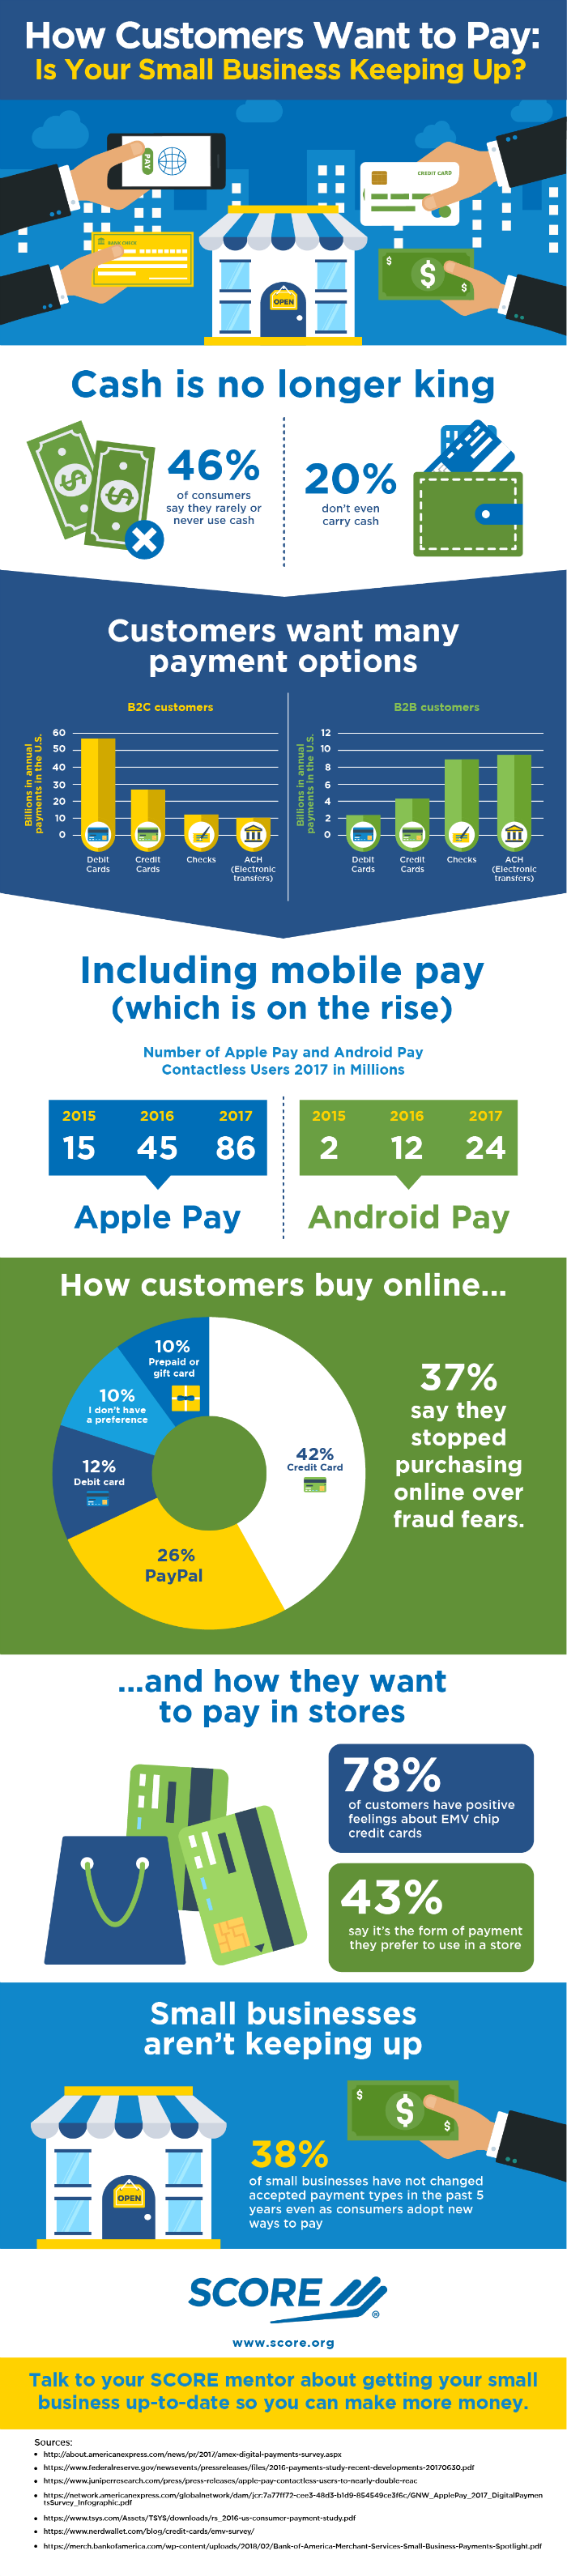 Infographic: How Customers Want to Pay - Is Your Small Business Keeping Up?